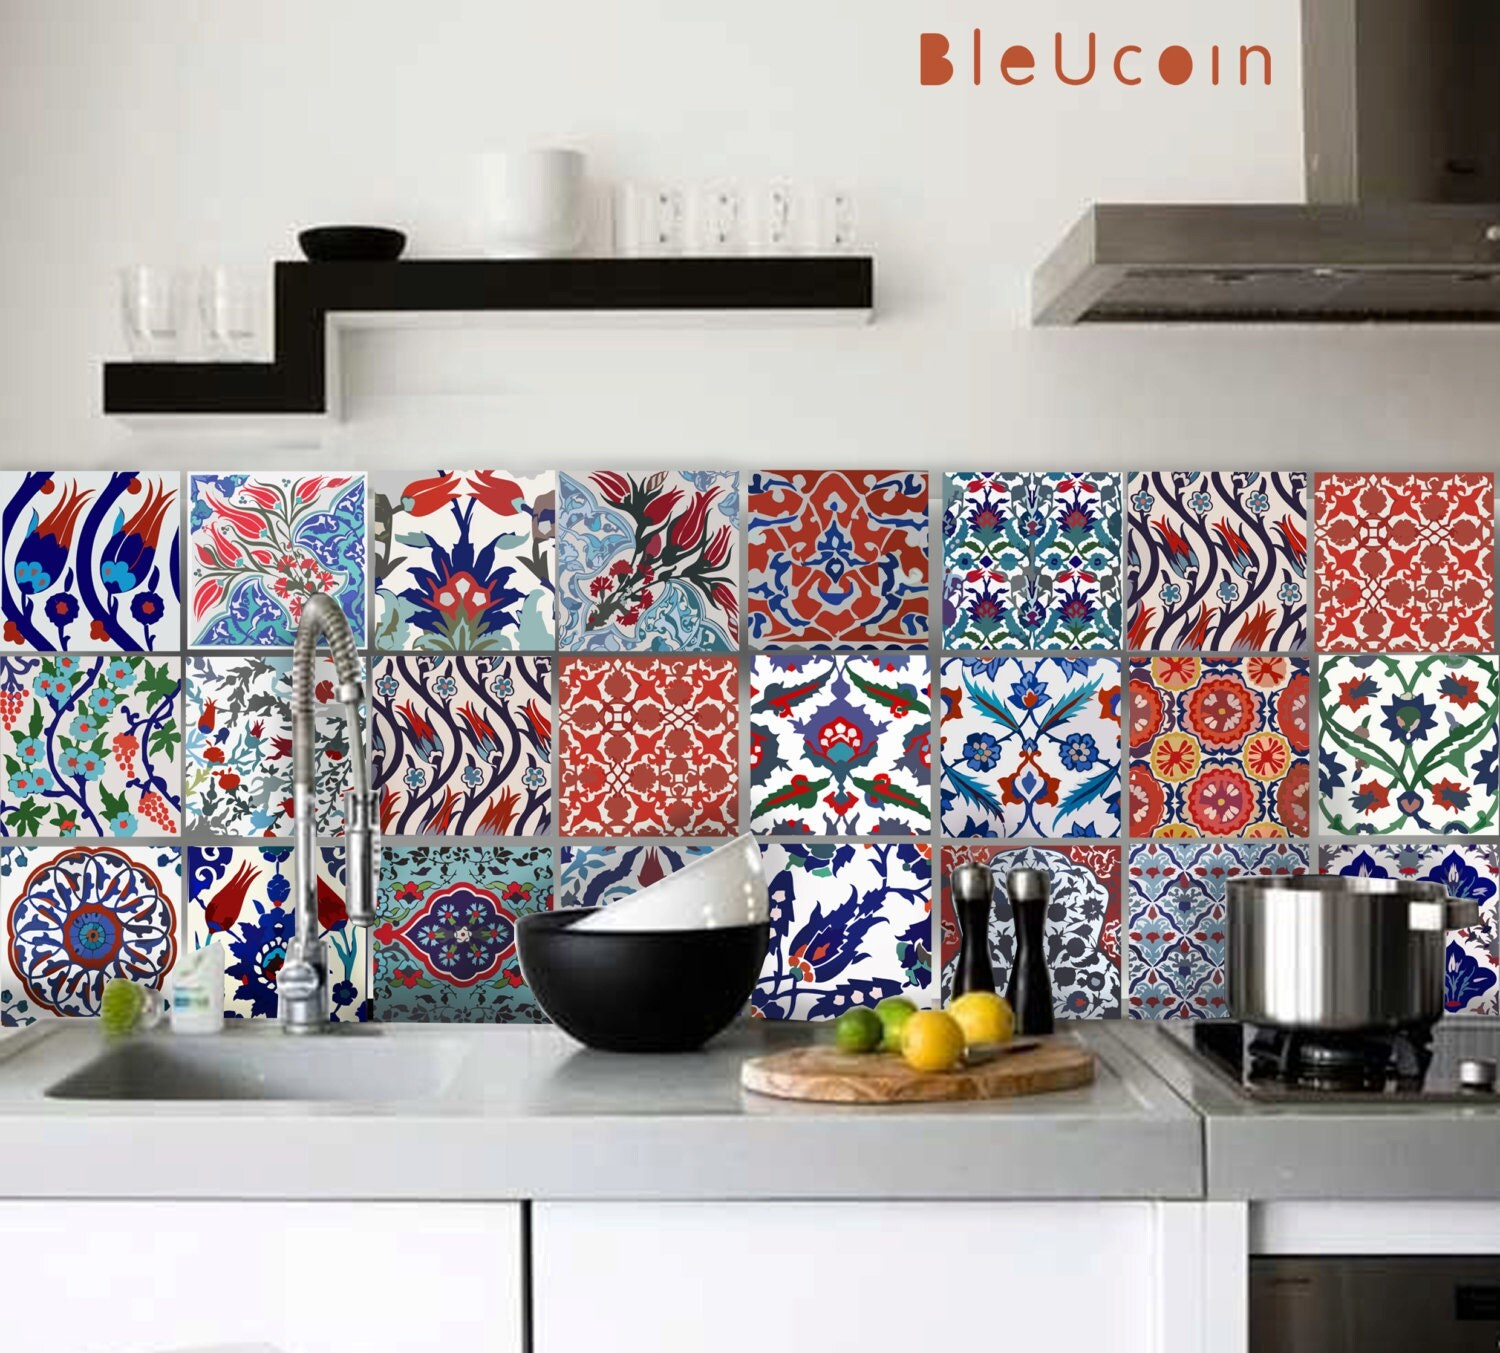 22 Designs With Amazing Morrocan Tile: Tile Decal Turkish Tile Decals 22 Designs 2 Sets 44 By